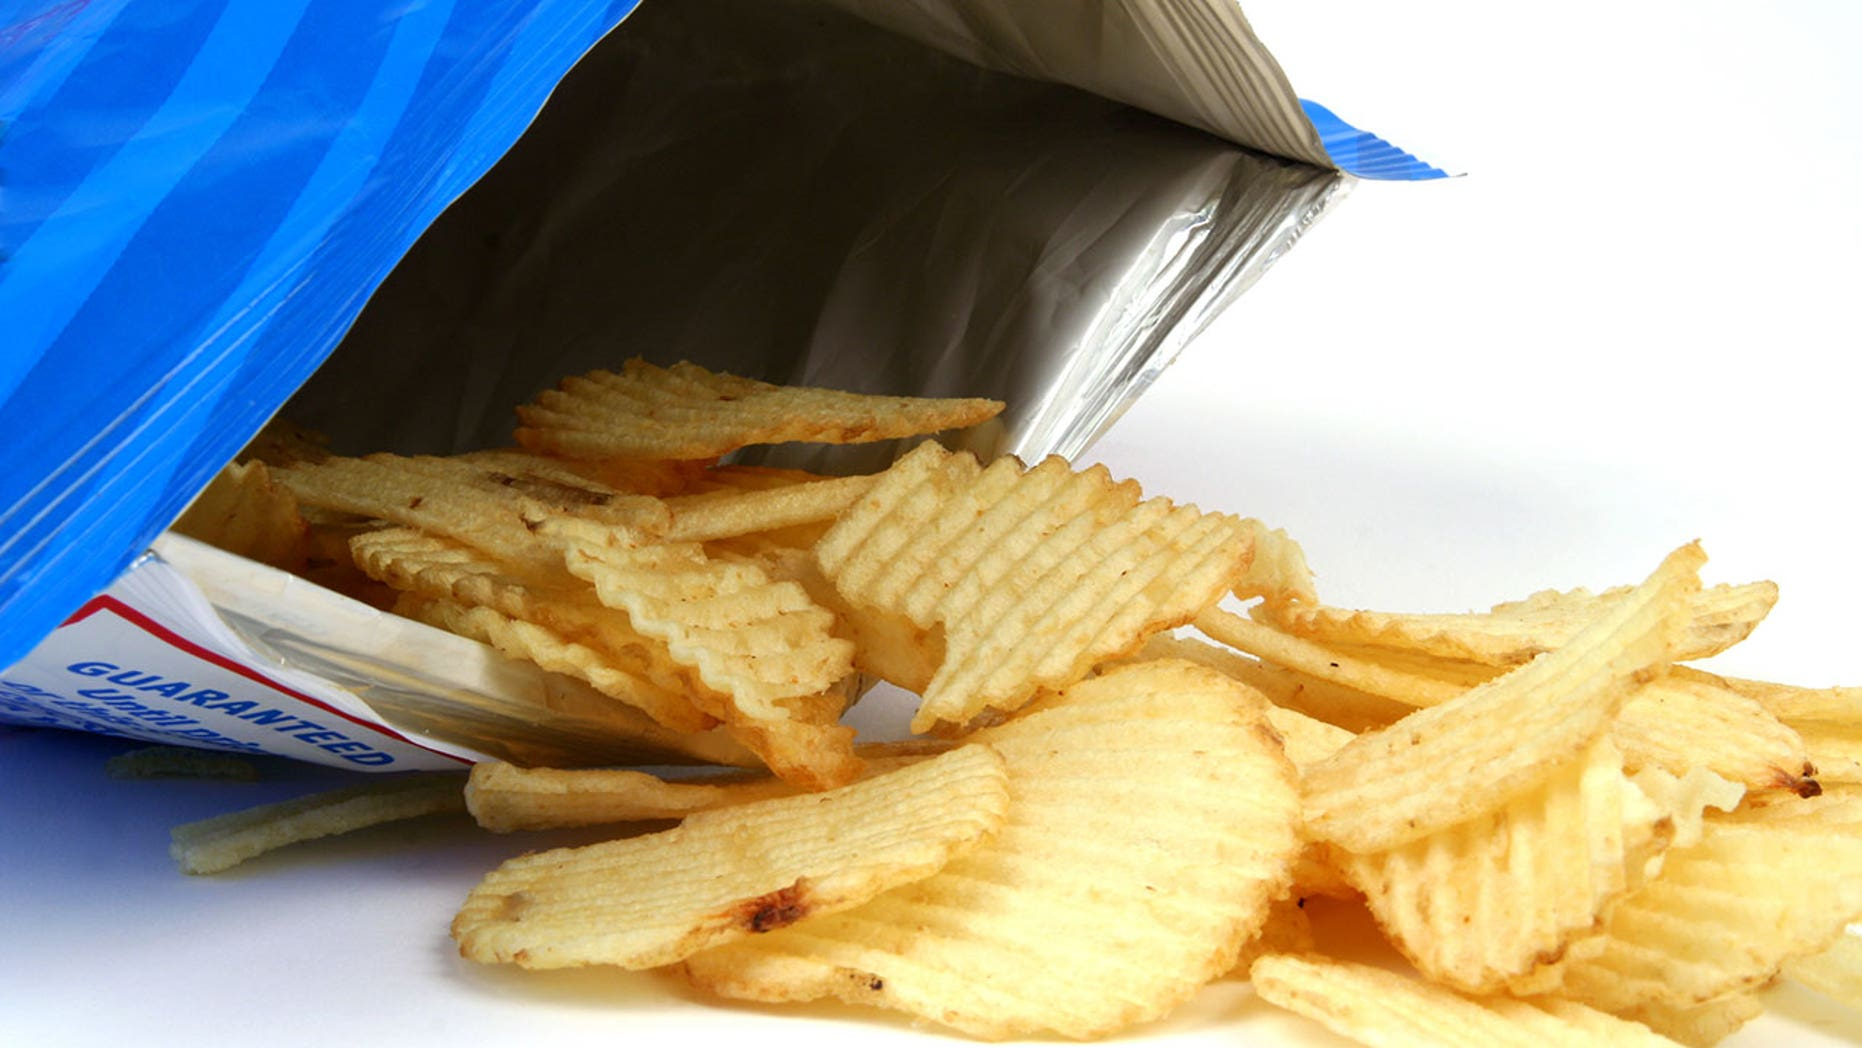 According to one study, saltier meals and snacks cause people to consume more calories.